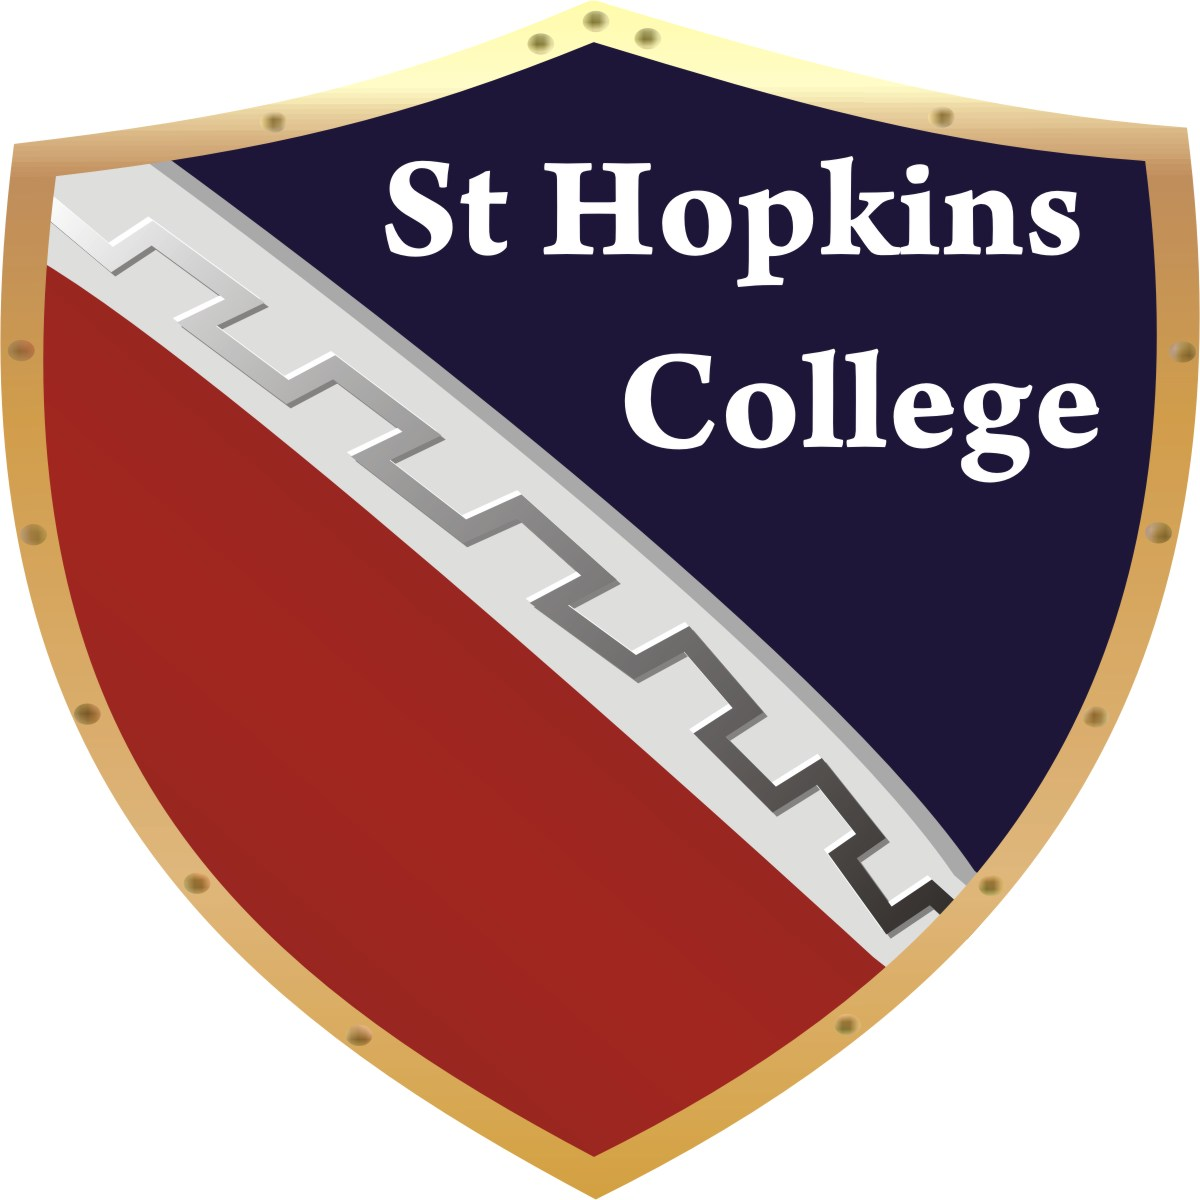 St Hopkins College - logo